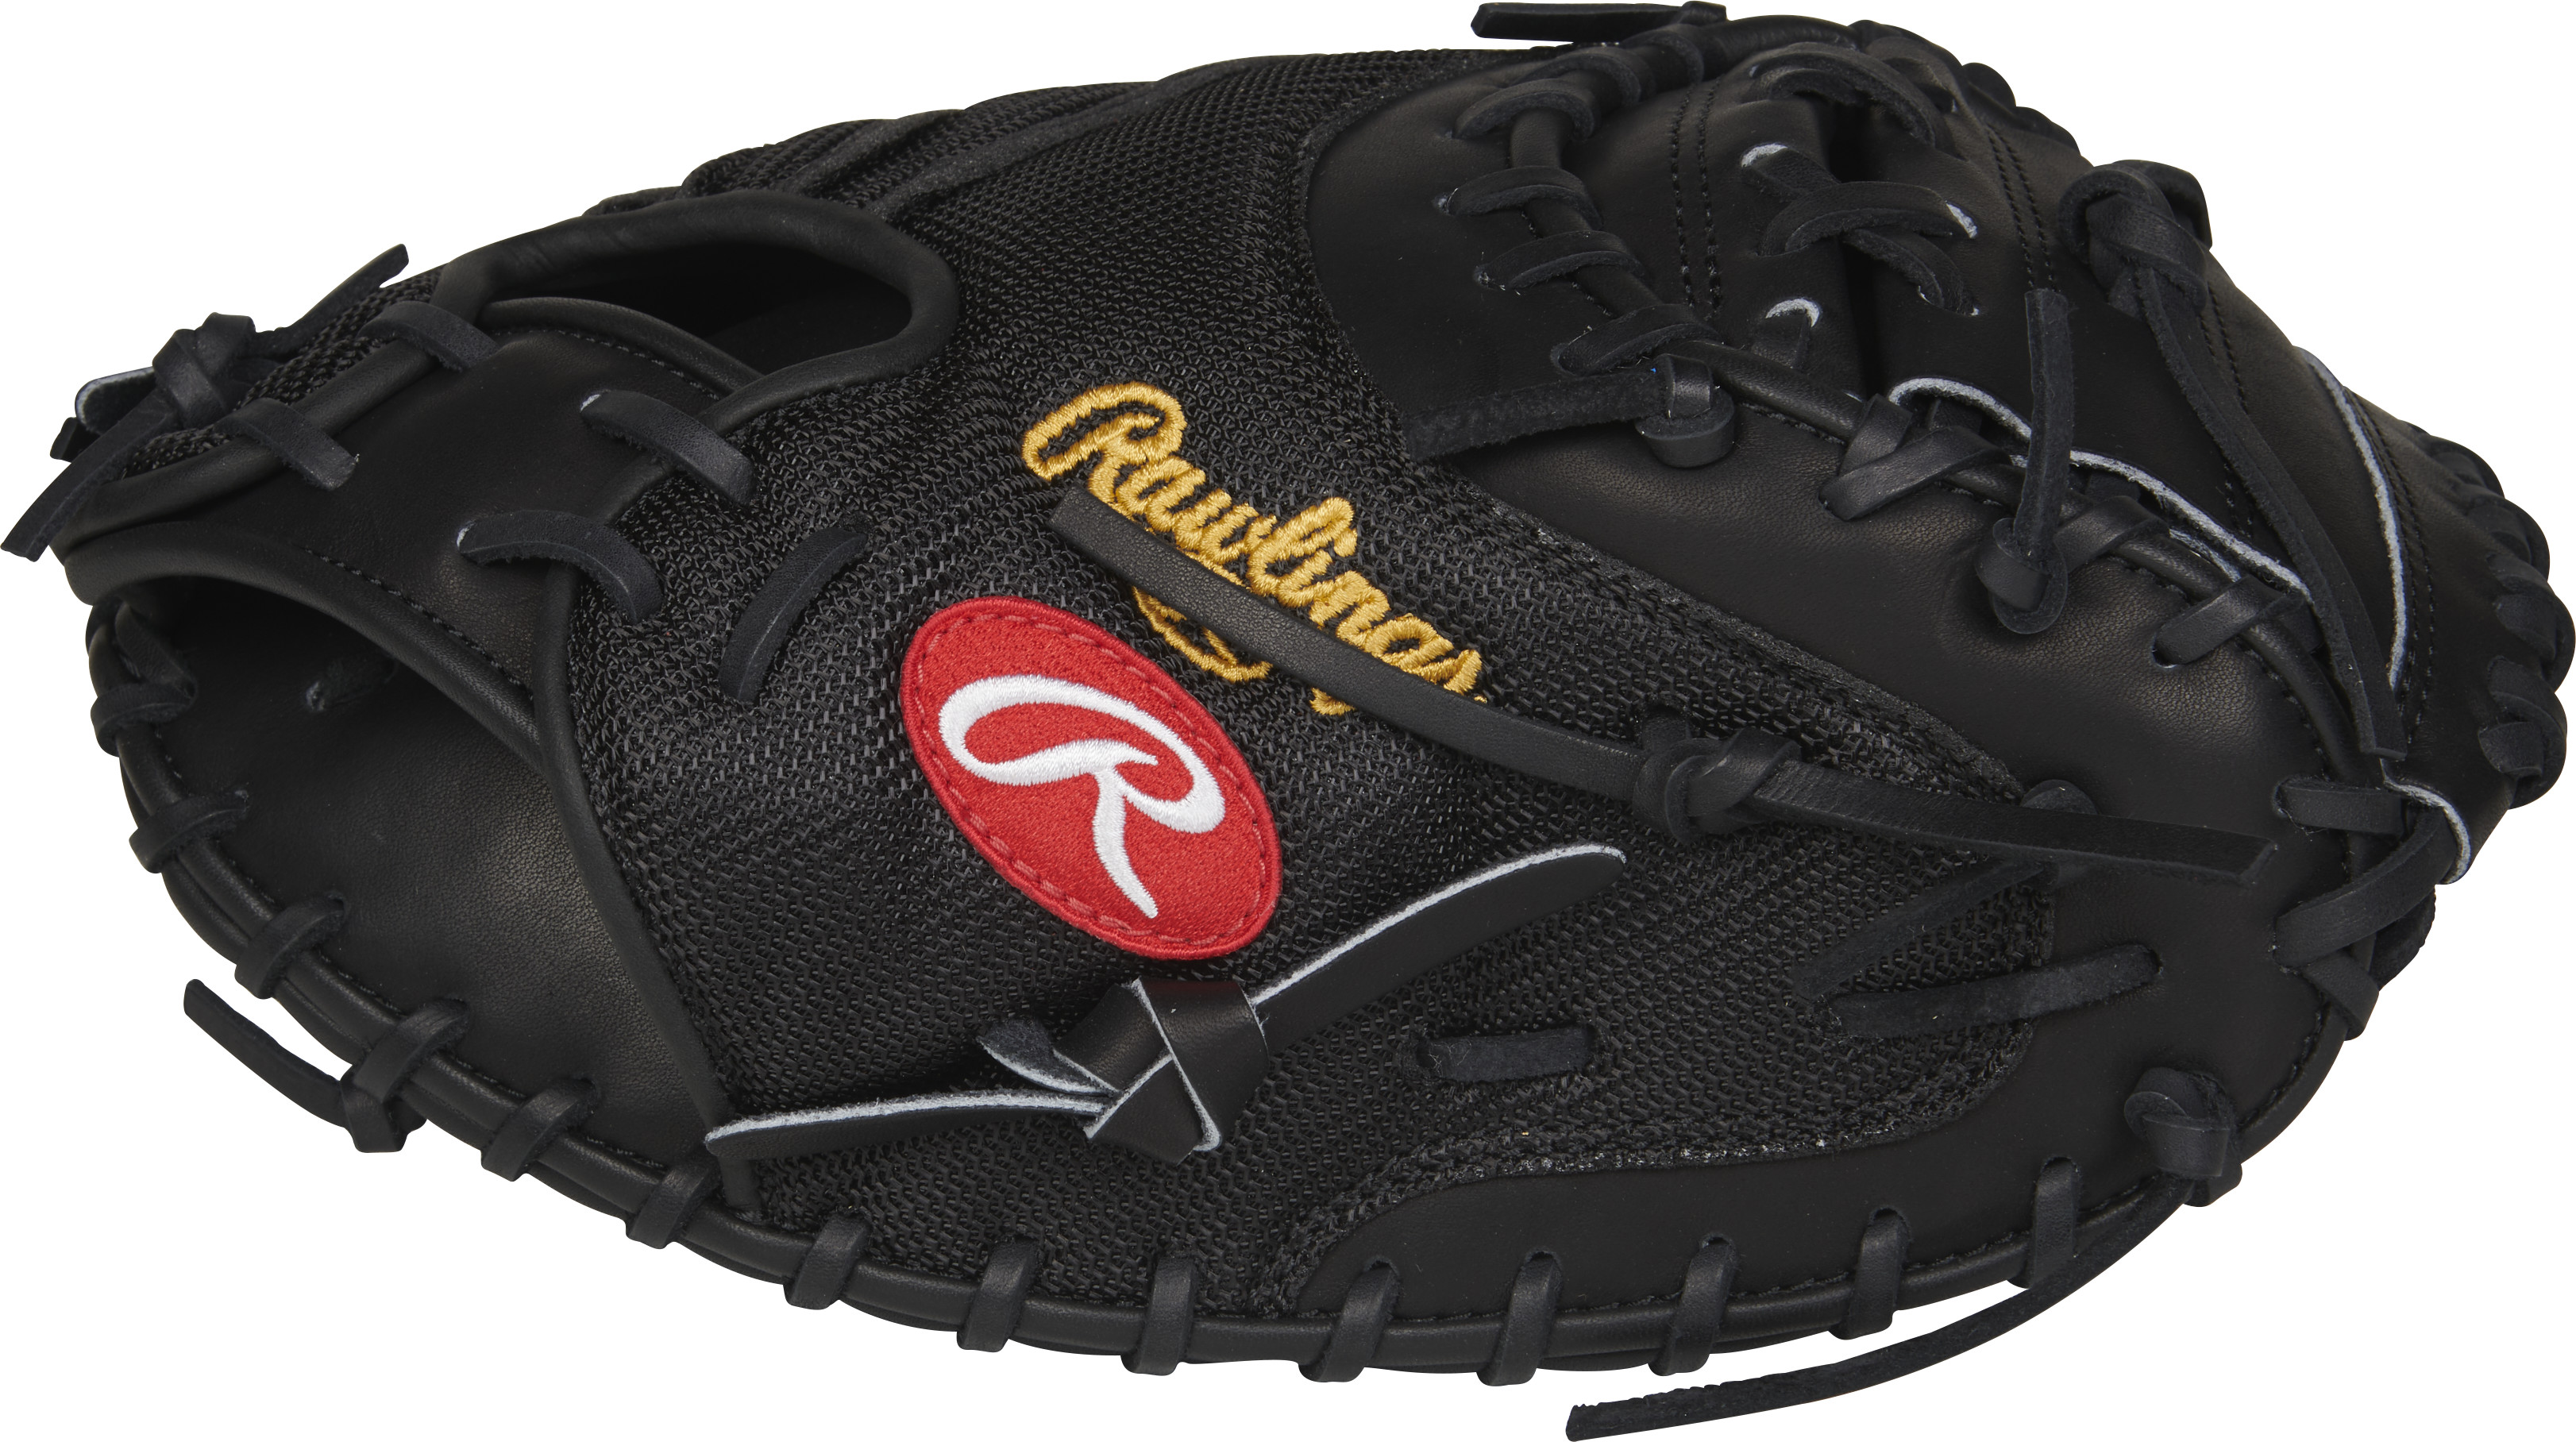 http://www.bestbatdeals.com/images/gloves/rawlings/PROYM4-3.jpg